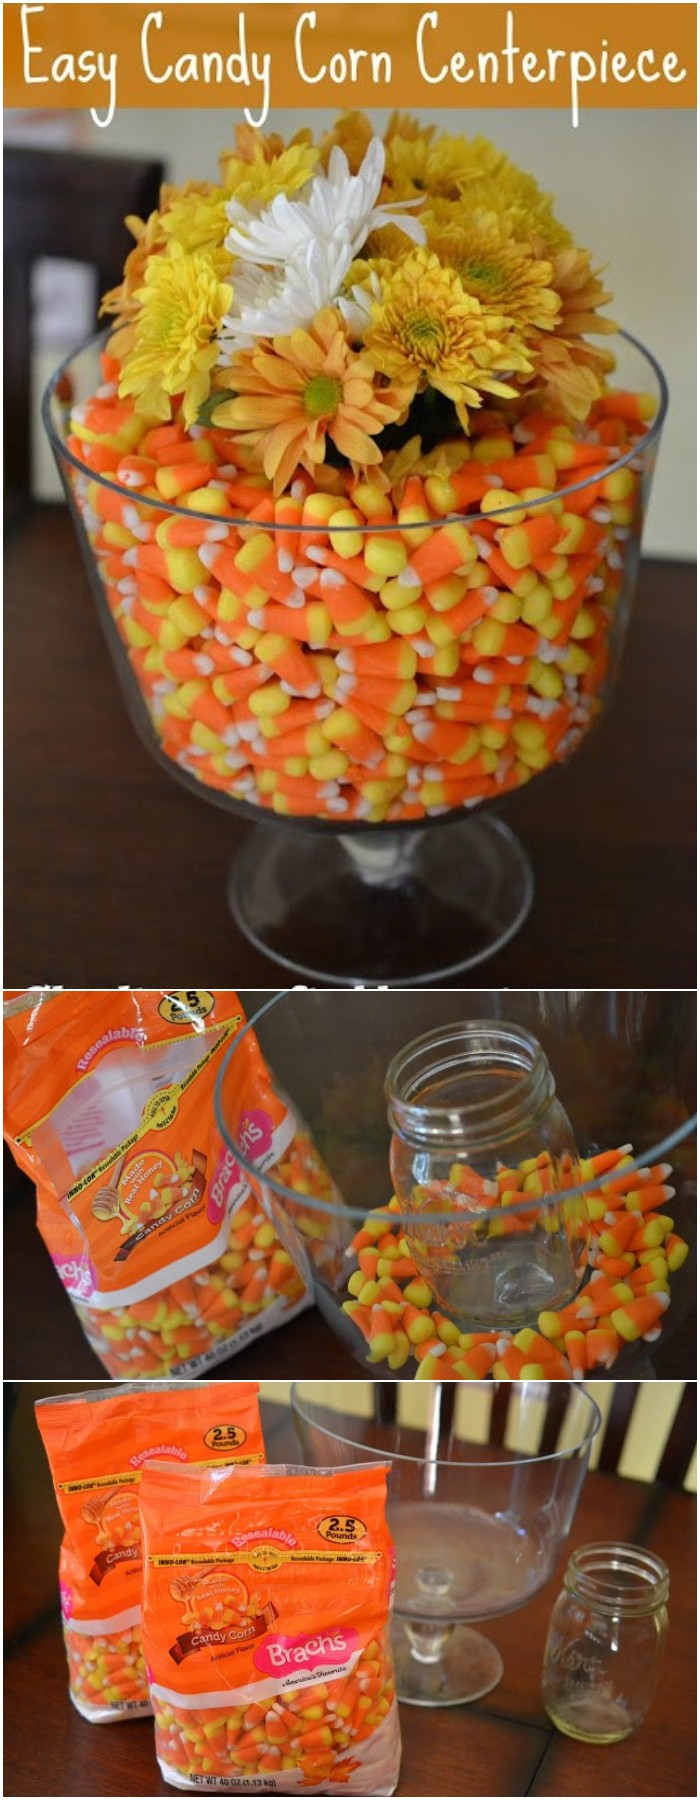 Easy Candy Corn Centerpiece